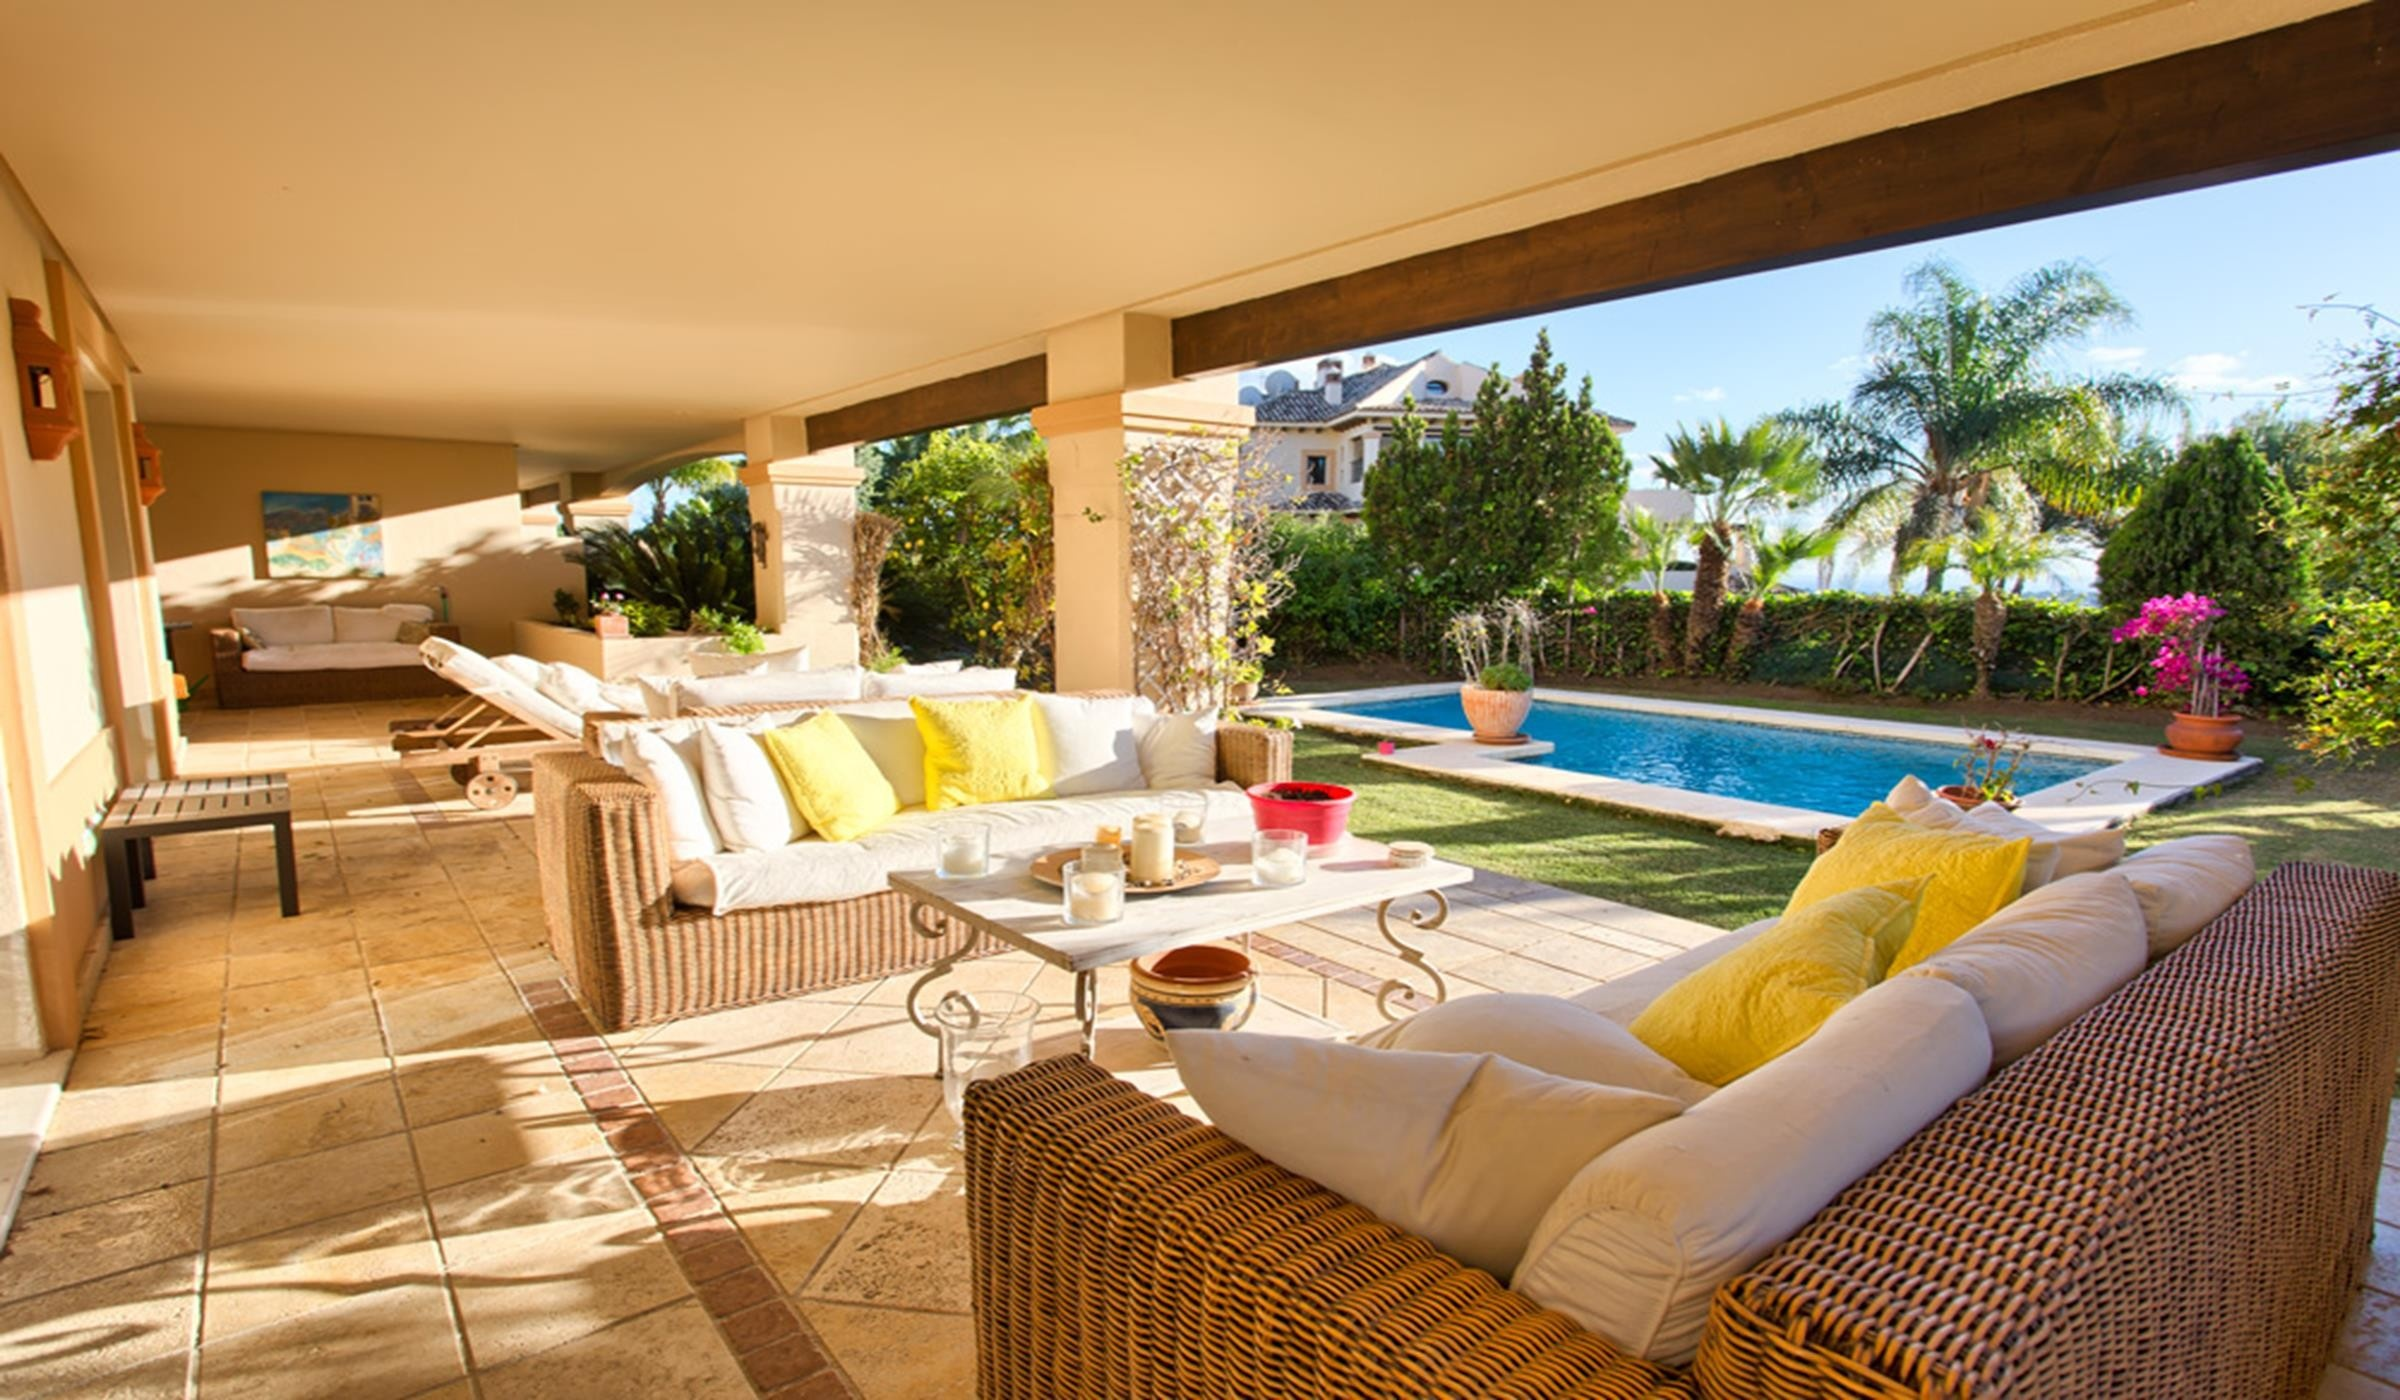 Luxury ground floor apartment in Aloha Park Nva. Andalucia.